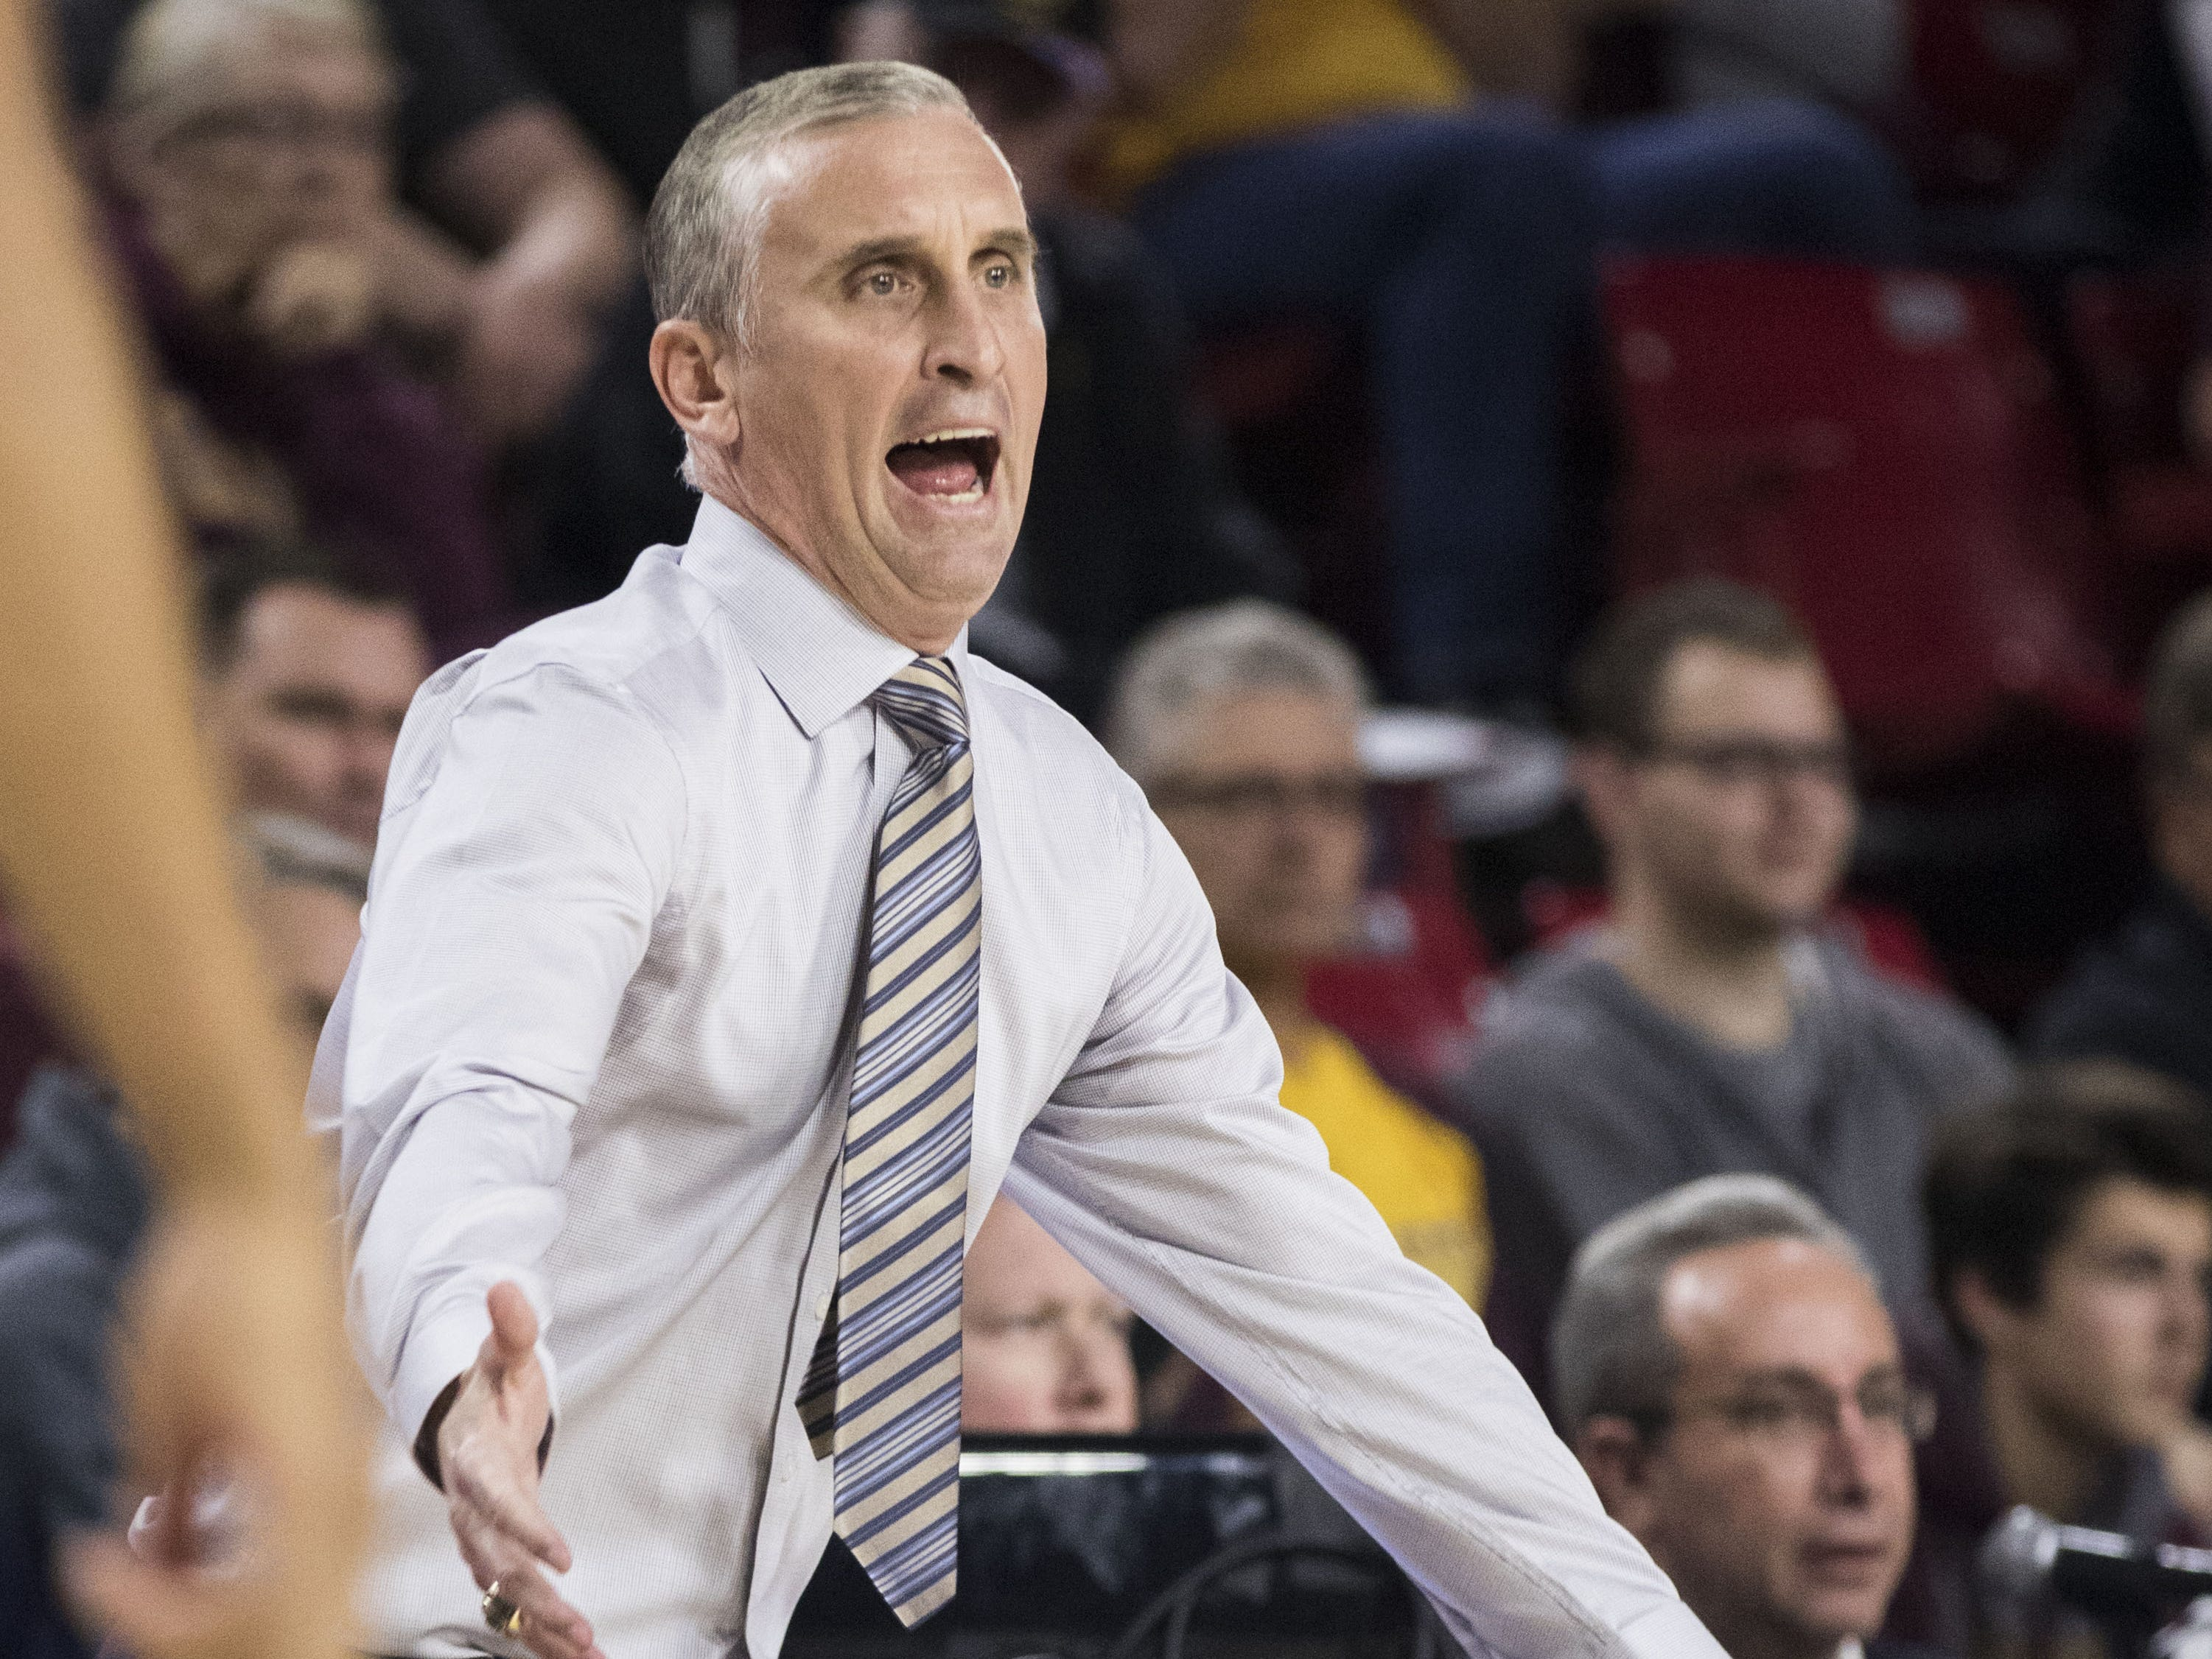 Arizona State University's head coach Bobby Hurley gets animated as Nebraska Omaha keeps it close during the first half of their game in Tempe, Wednesday, Nov.28,  2018. Darryl Webb/Special for the Republic